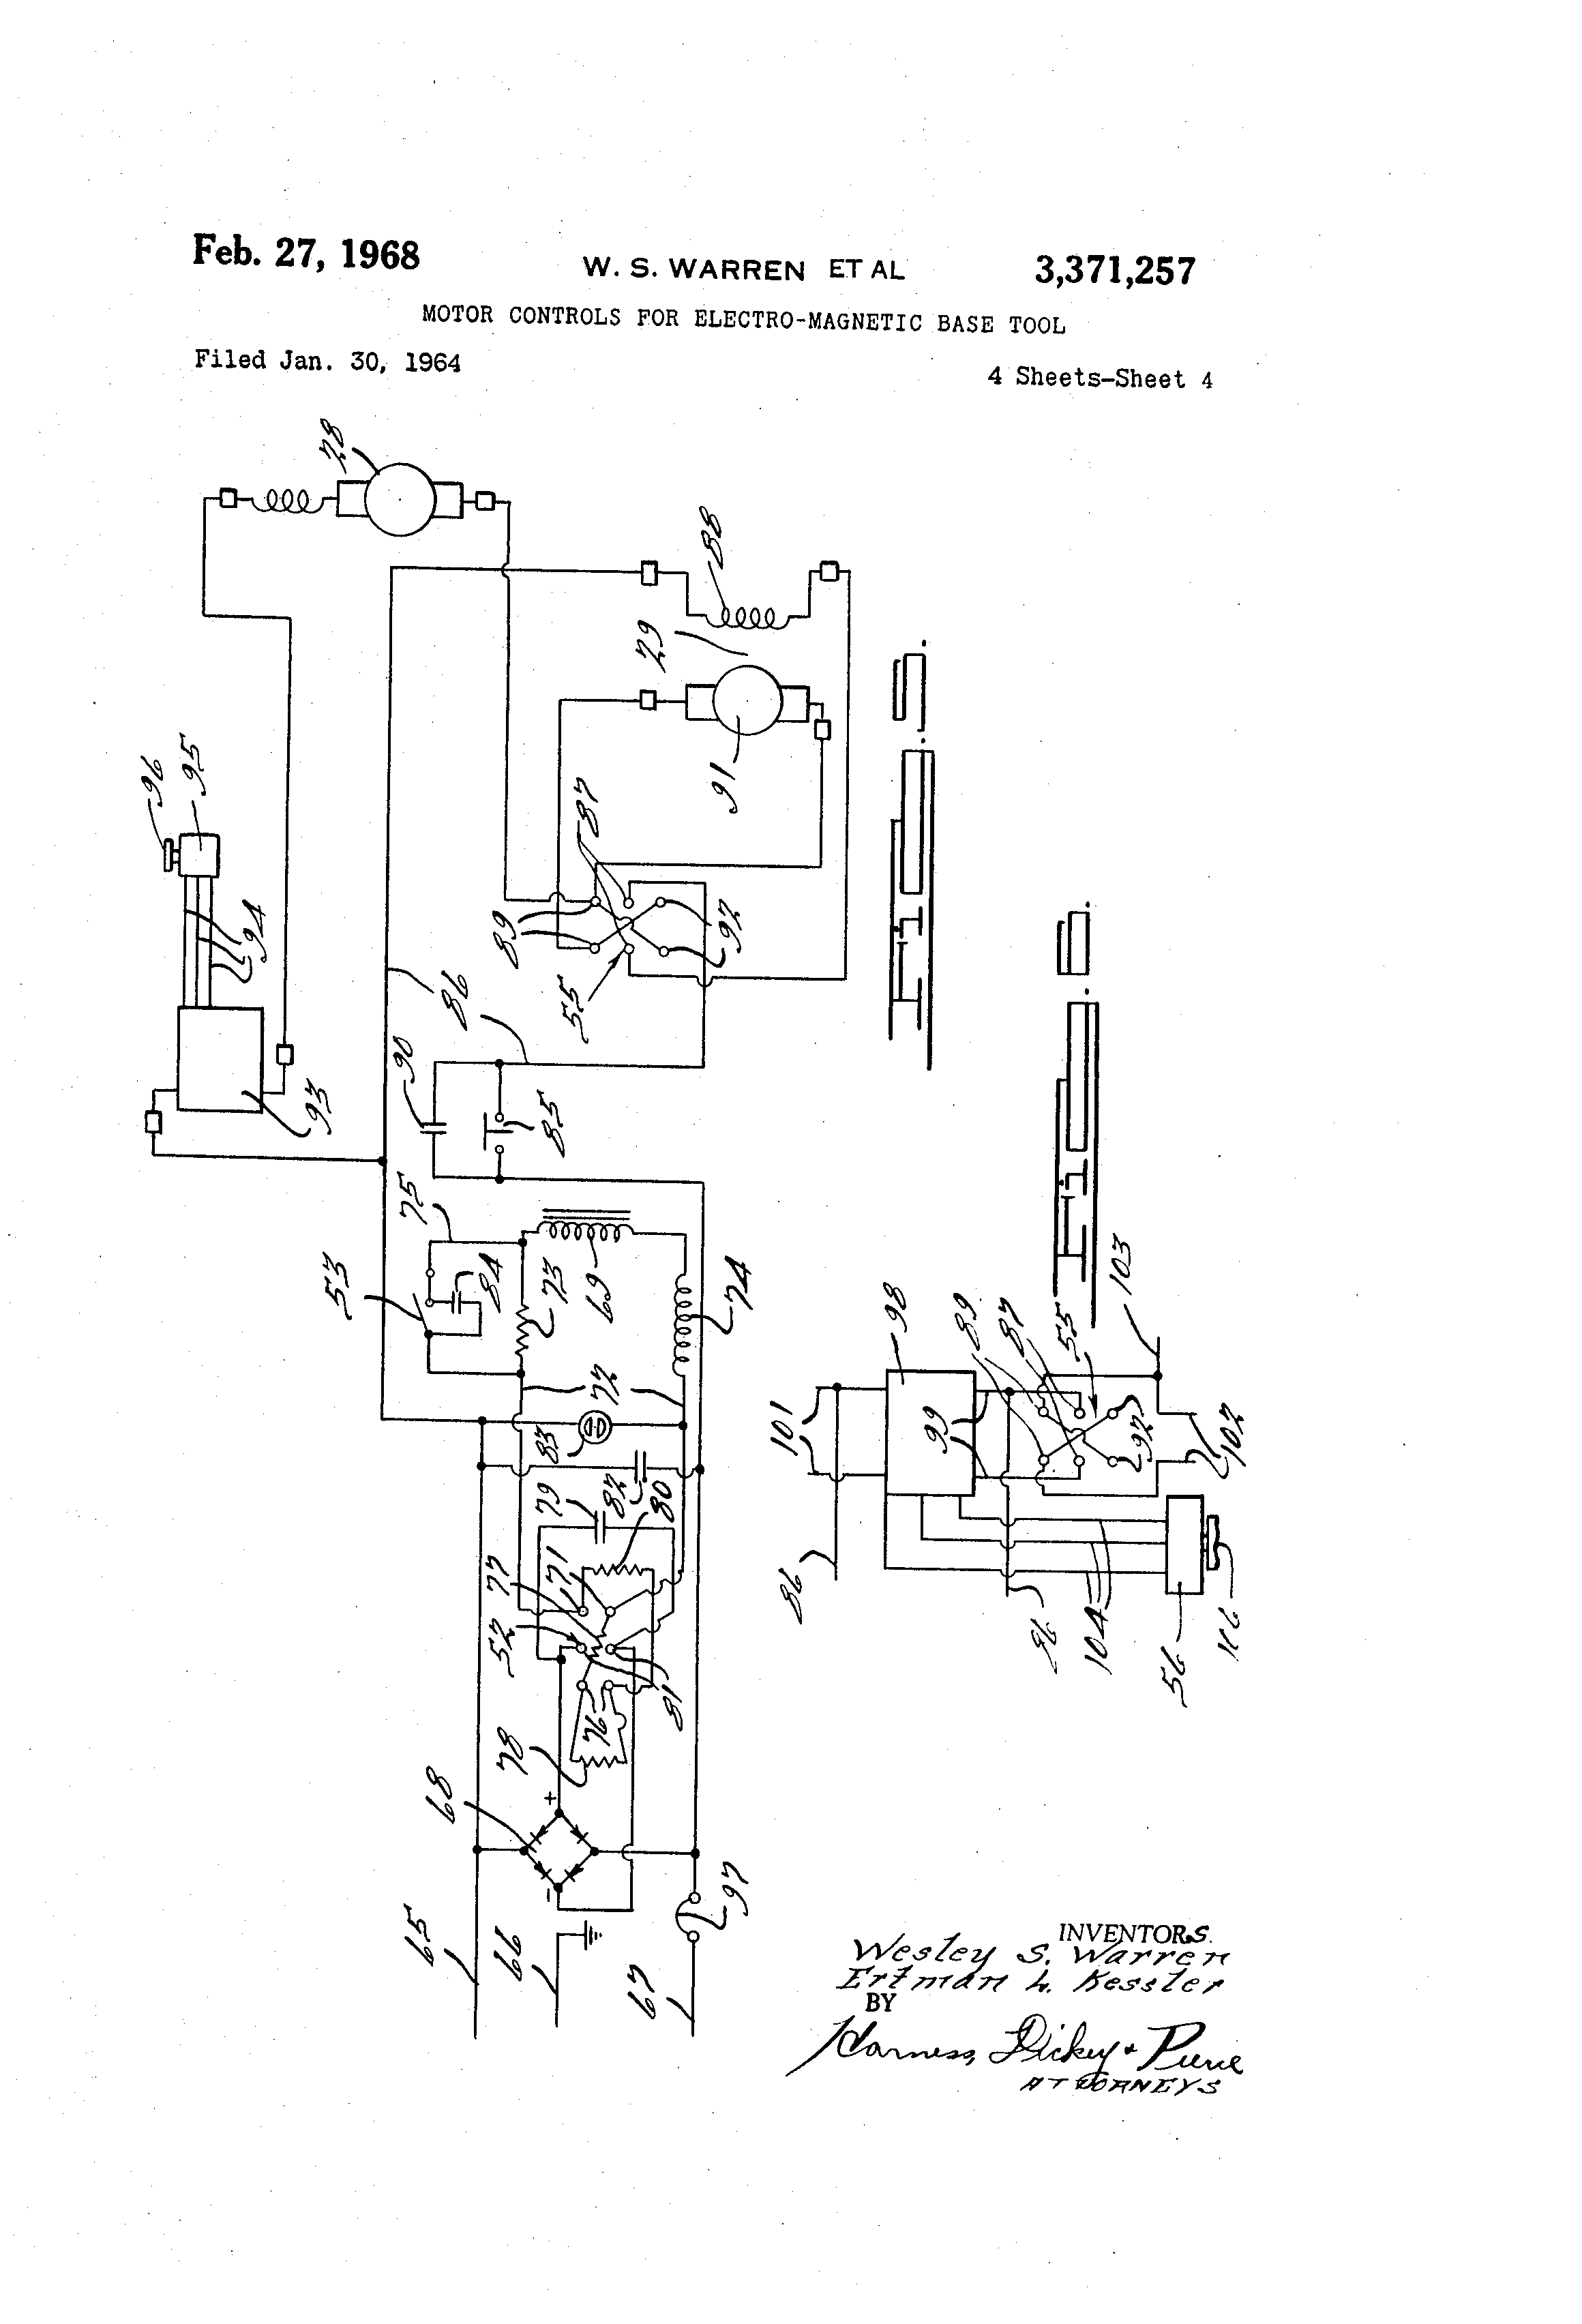 Milwaukee Electric Drill Wiring Diagram 39 Images Sawzall Us3371257 3 Patent Motor Controls For Electro Magnetic Base Tool